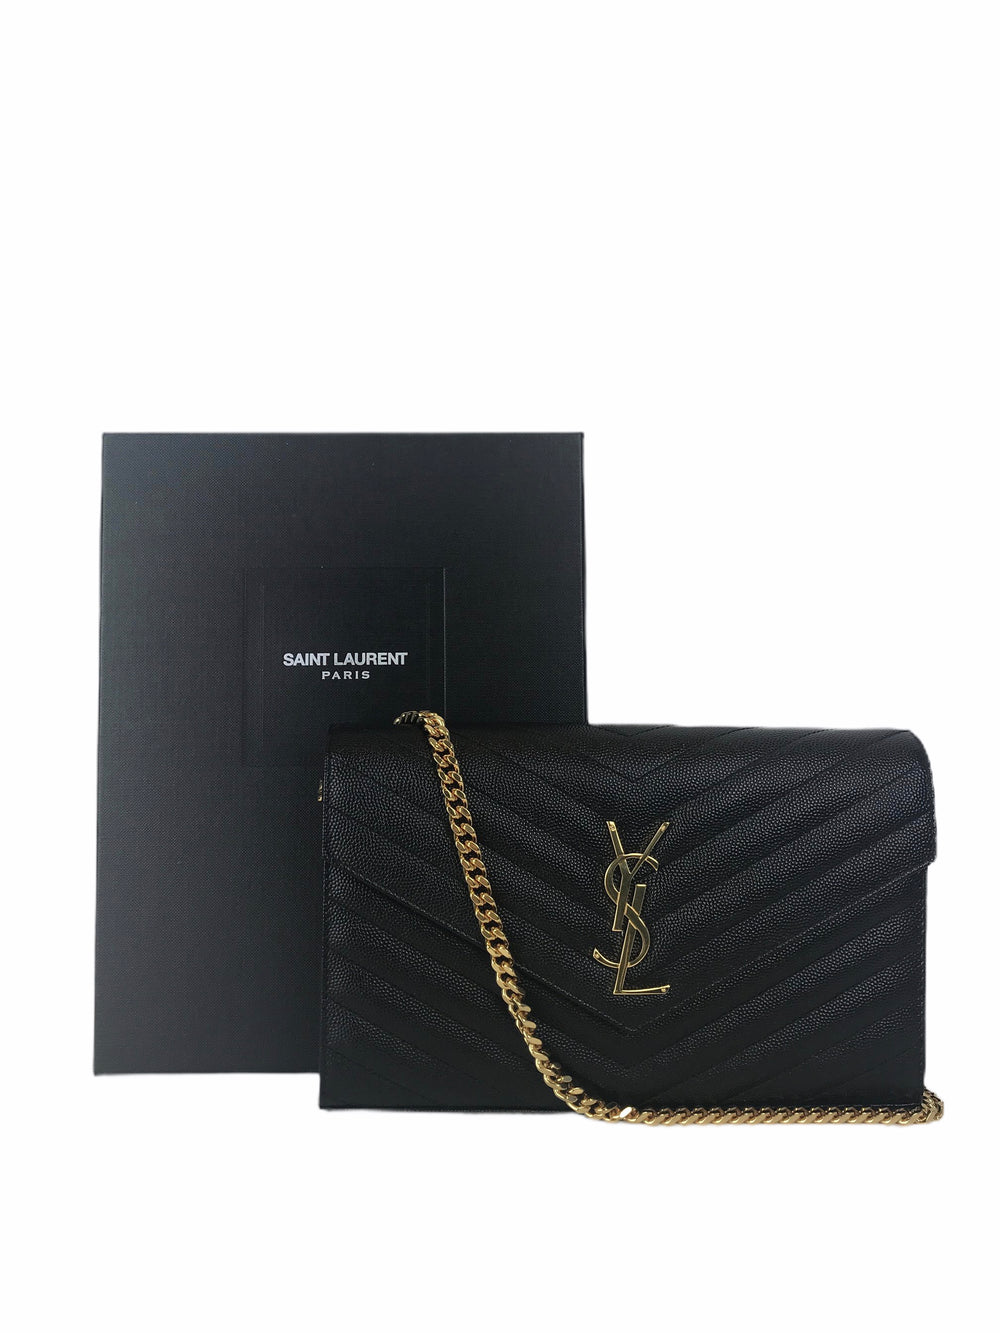 Saint Laurent Black Chevron Leather Wallet on Chain - As Seen on Instagram 16/08/2020